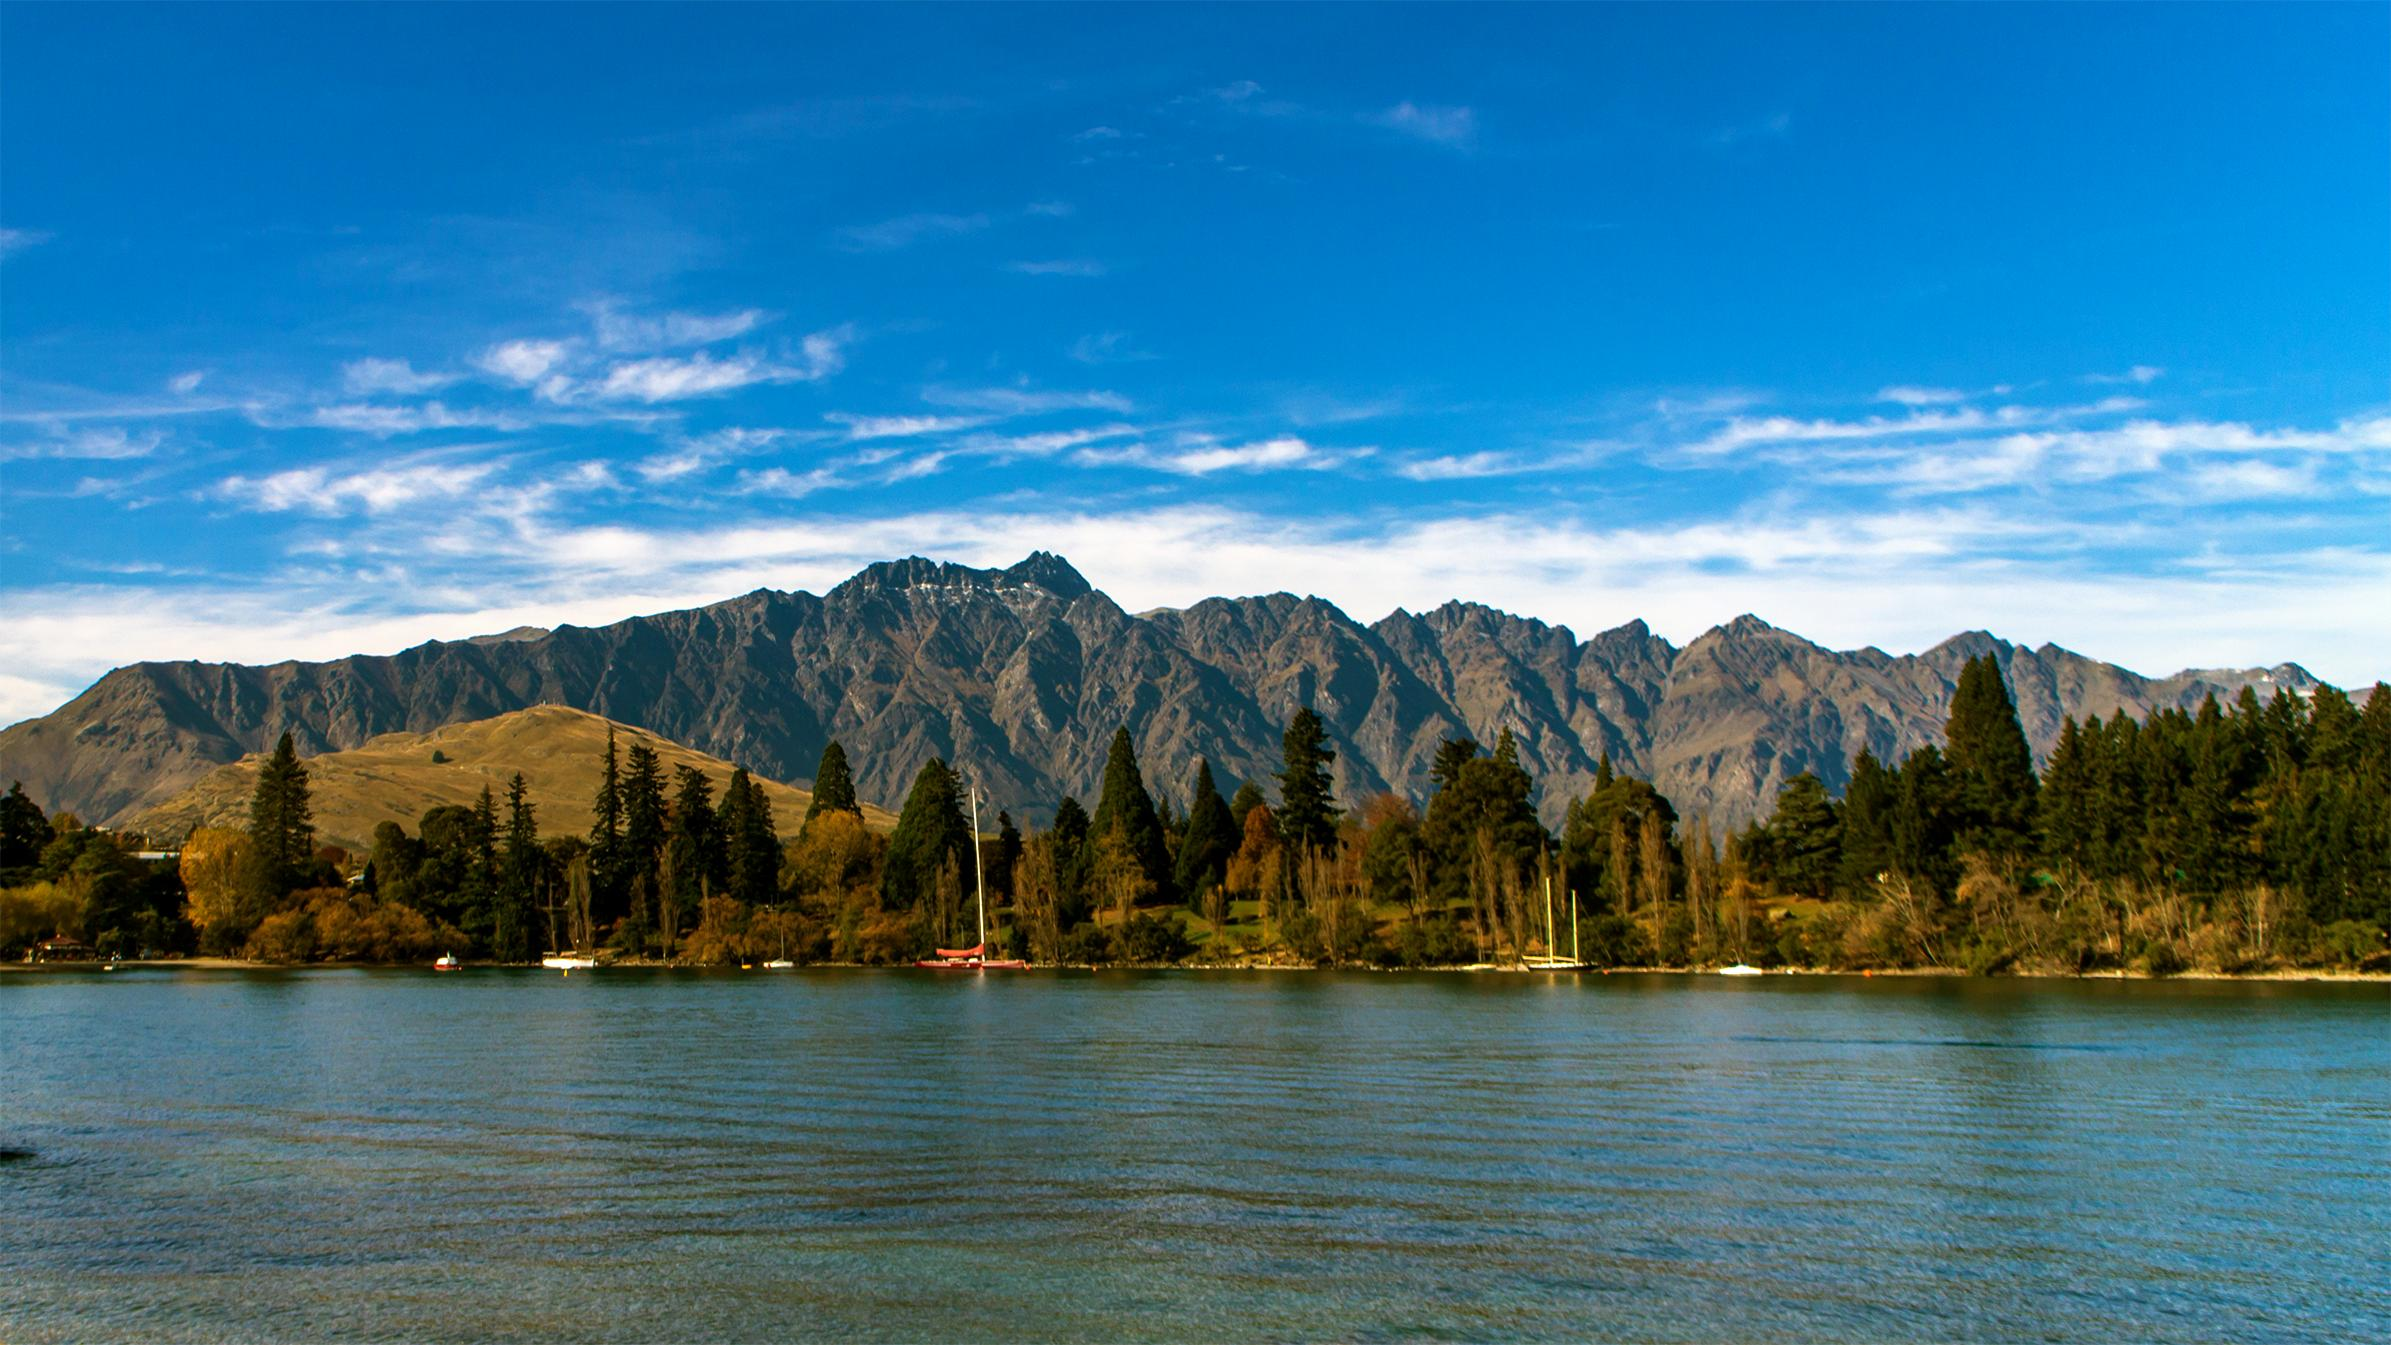 The_Remarkables,_New_Zealand,_Australasia